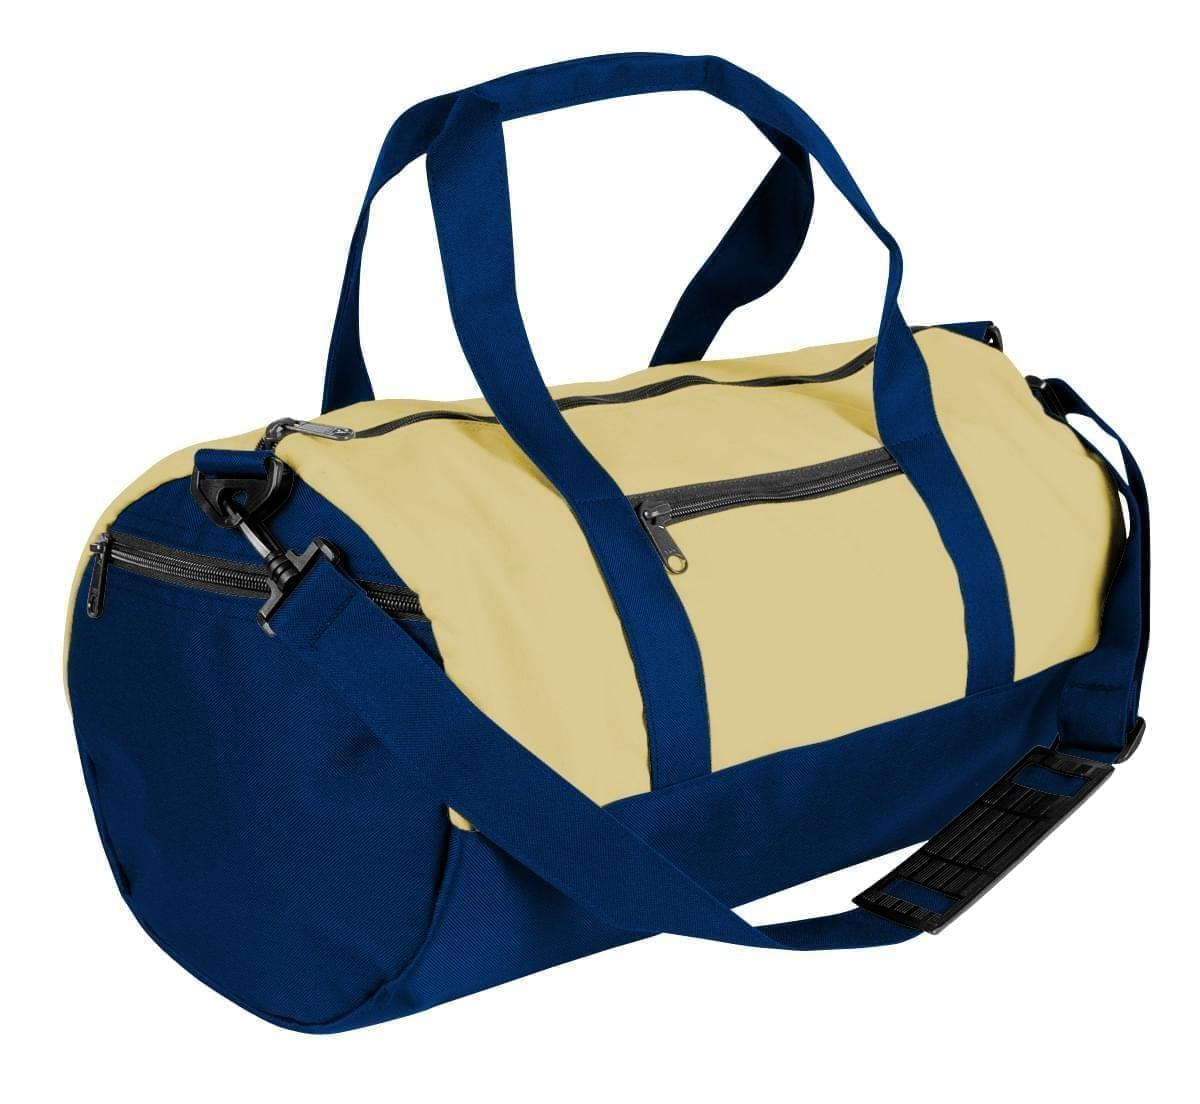 USA Made Canvas Equipment Duffle Bags, Natural-Navy, PMLXZ2AAKI